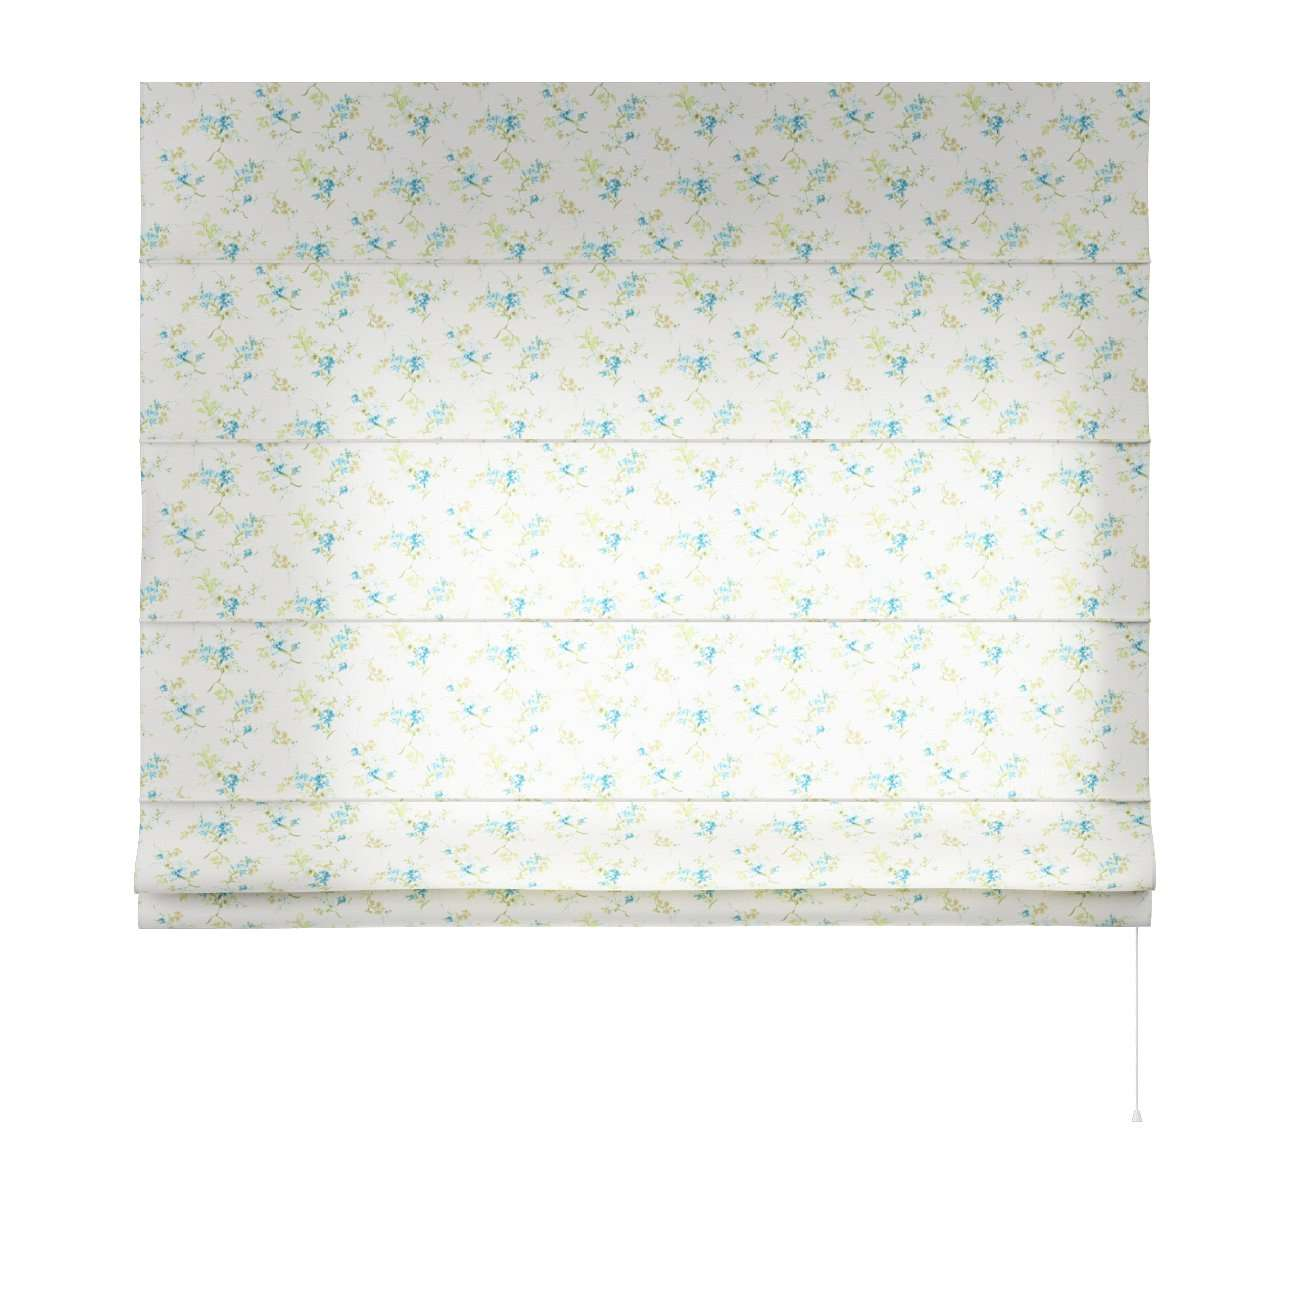 Capri roman blind 80 x 170 cm (31.5 x 67 inch) in collection Mirella, fabric: 141-16